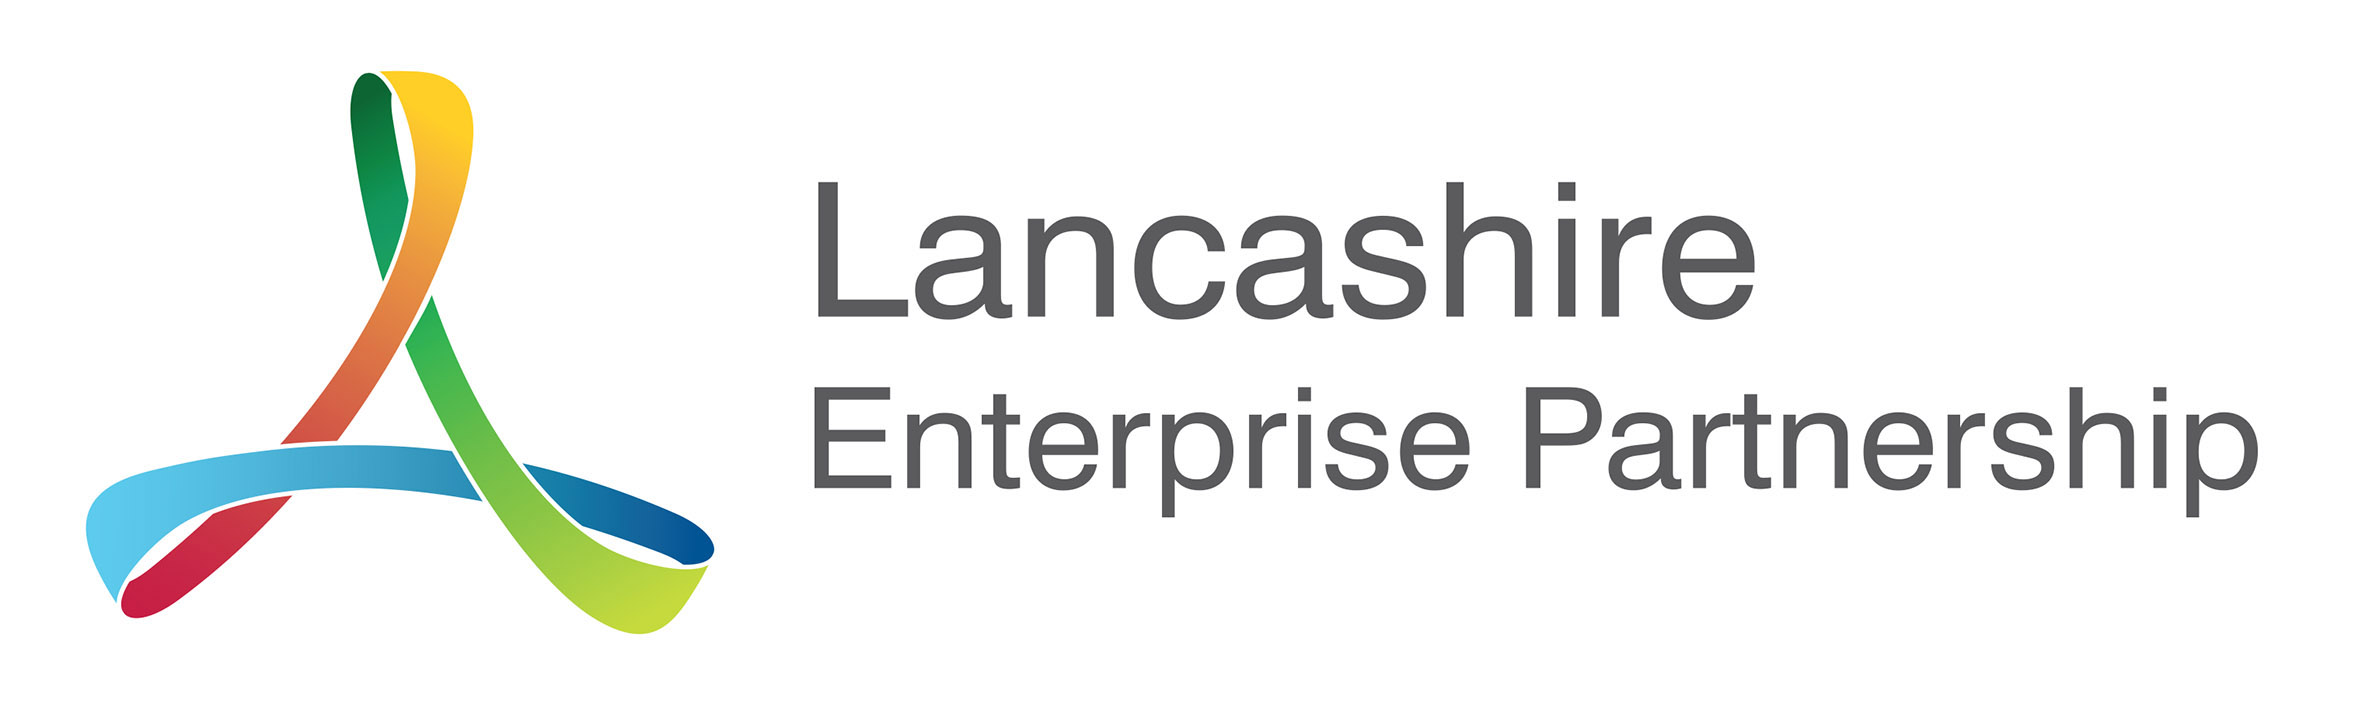 Lancashire Enterprise Partnership